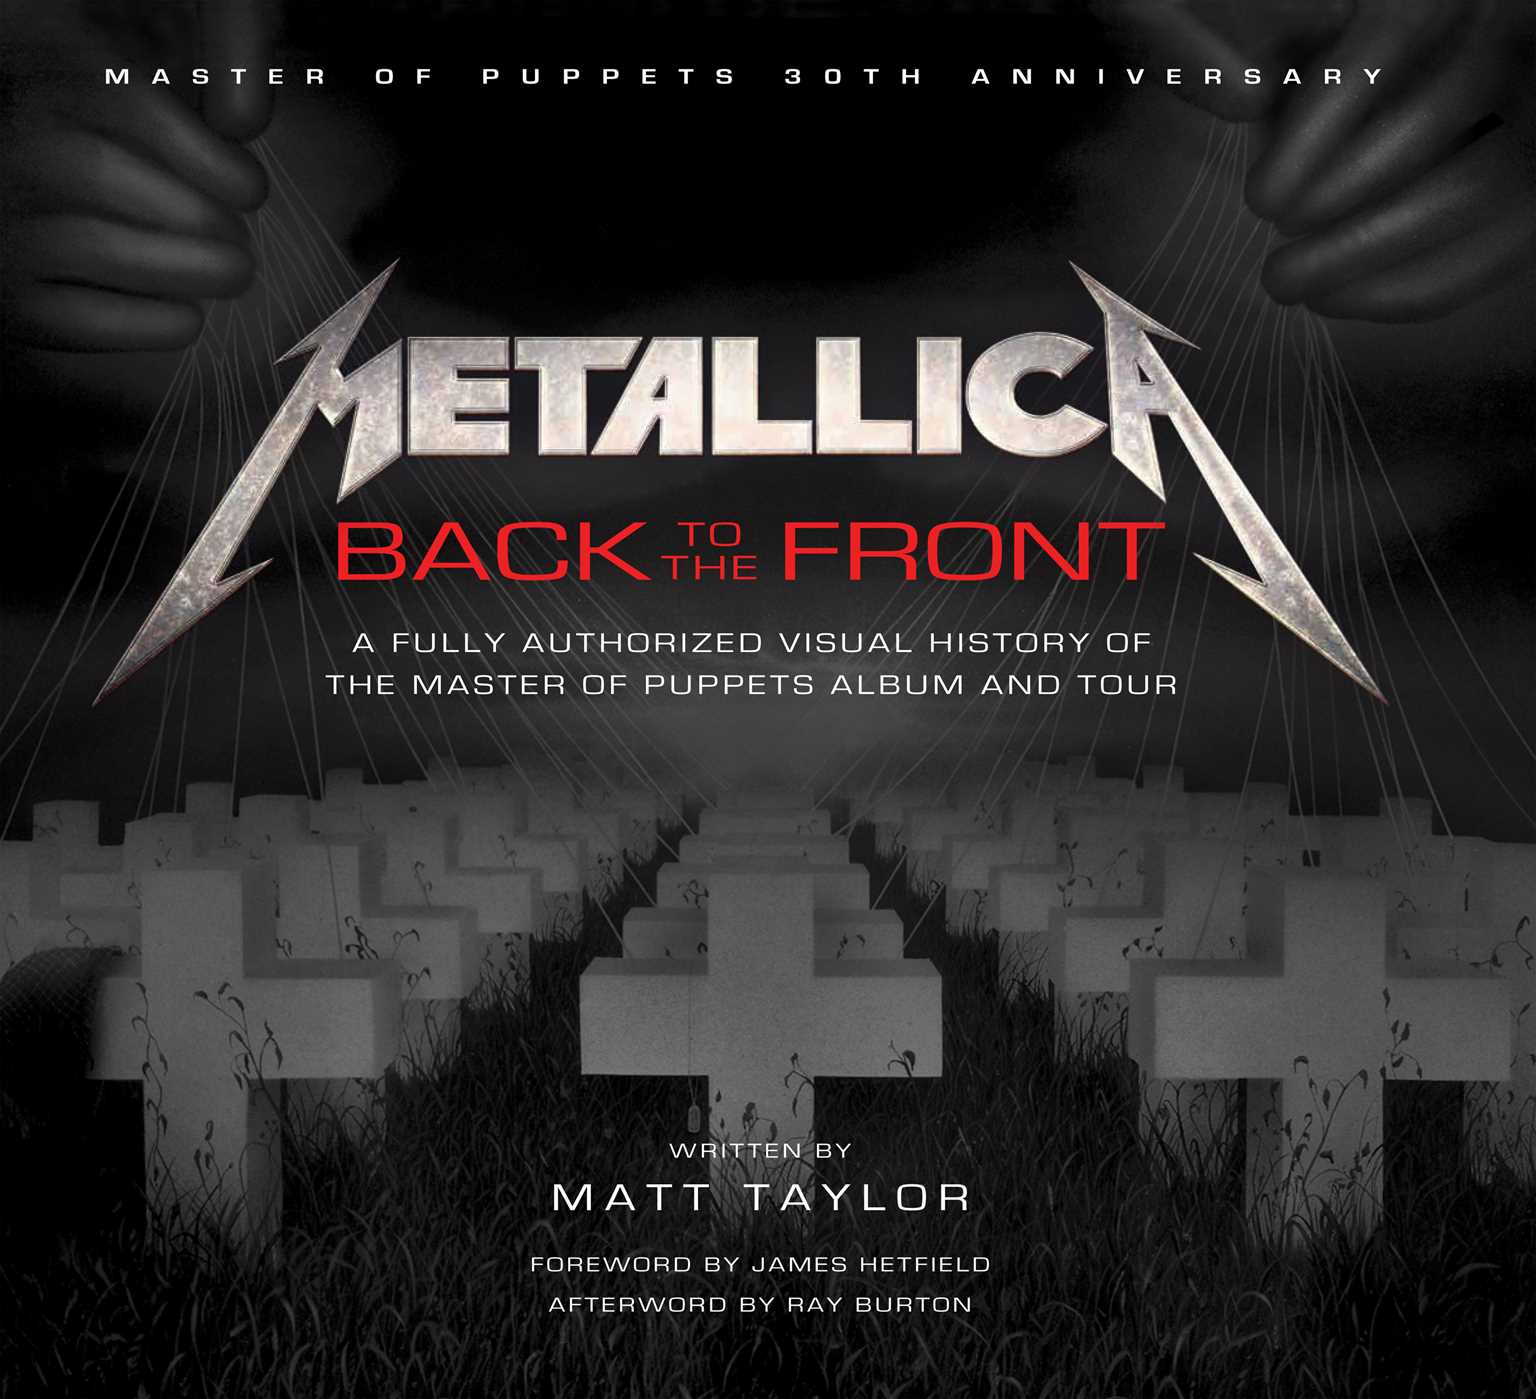 Metallica: Back to the Front : A Fully Authorized Visual History of the Master of Puppets Album and Tour